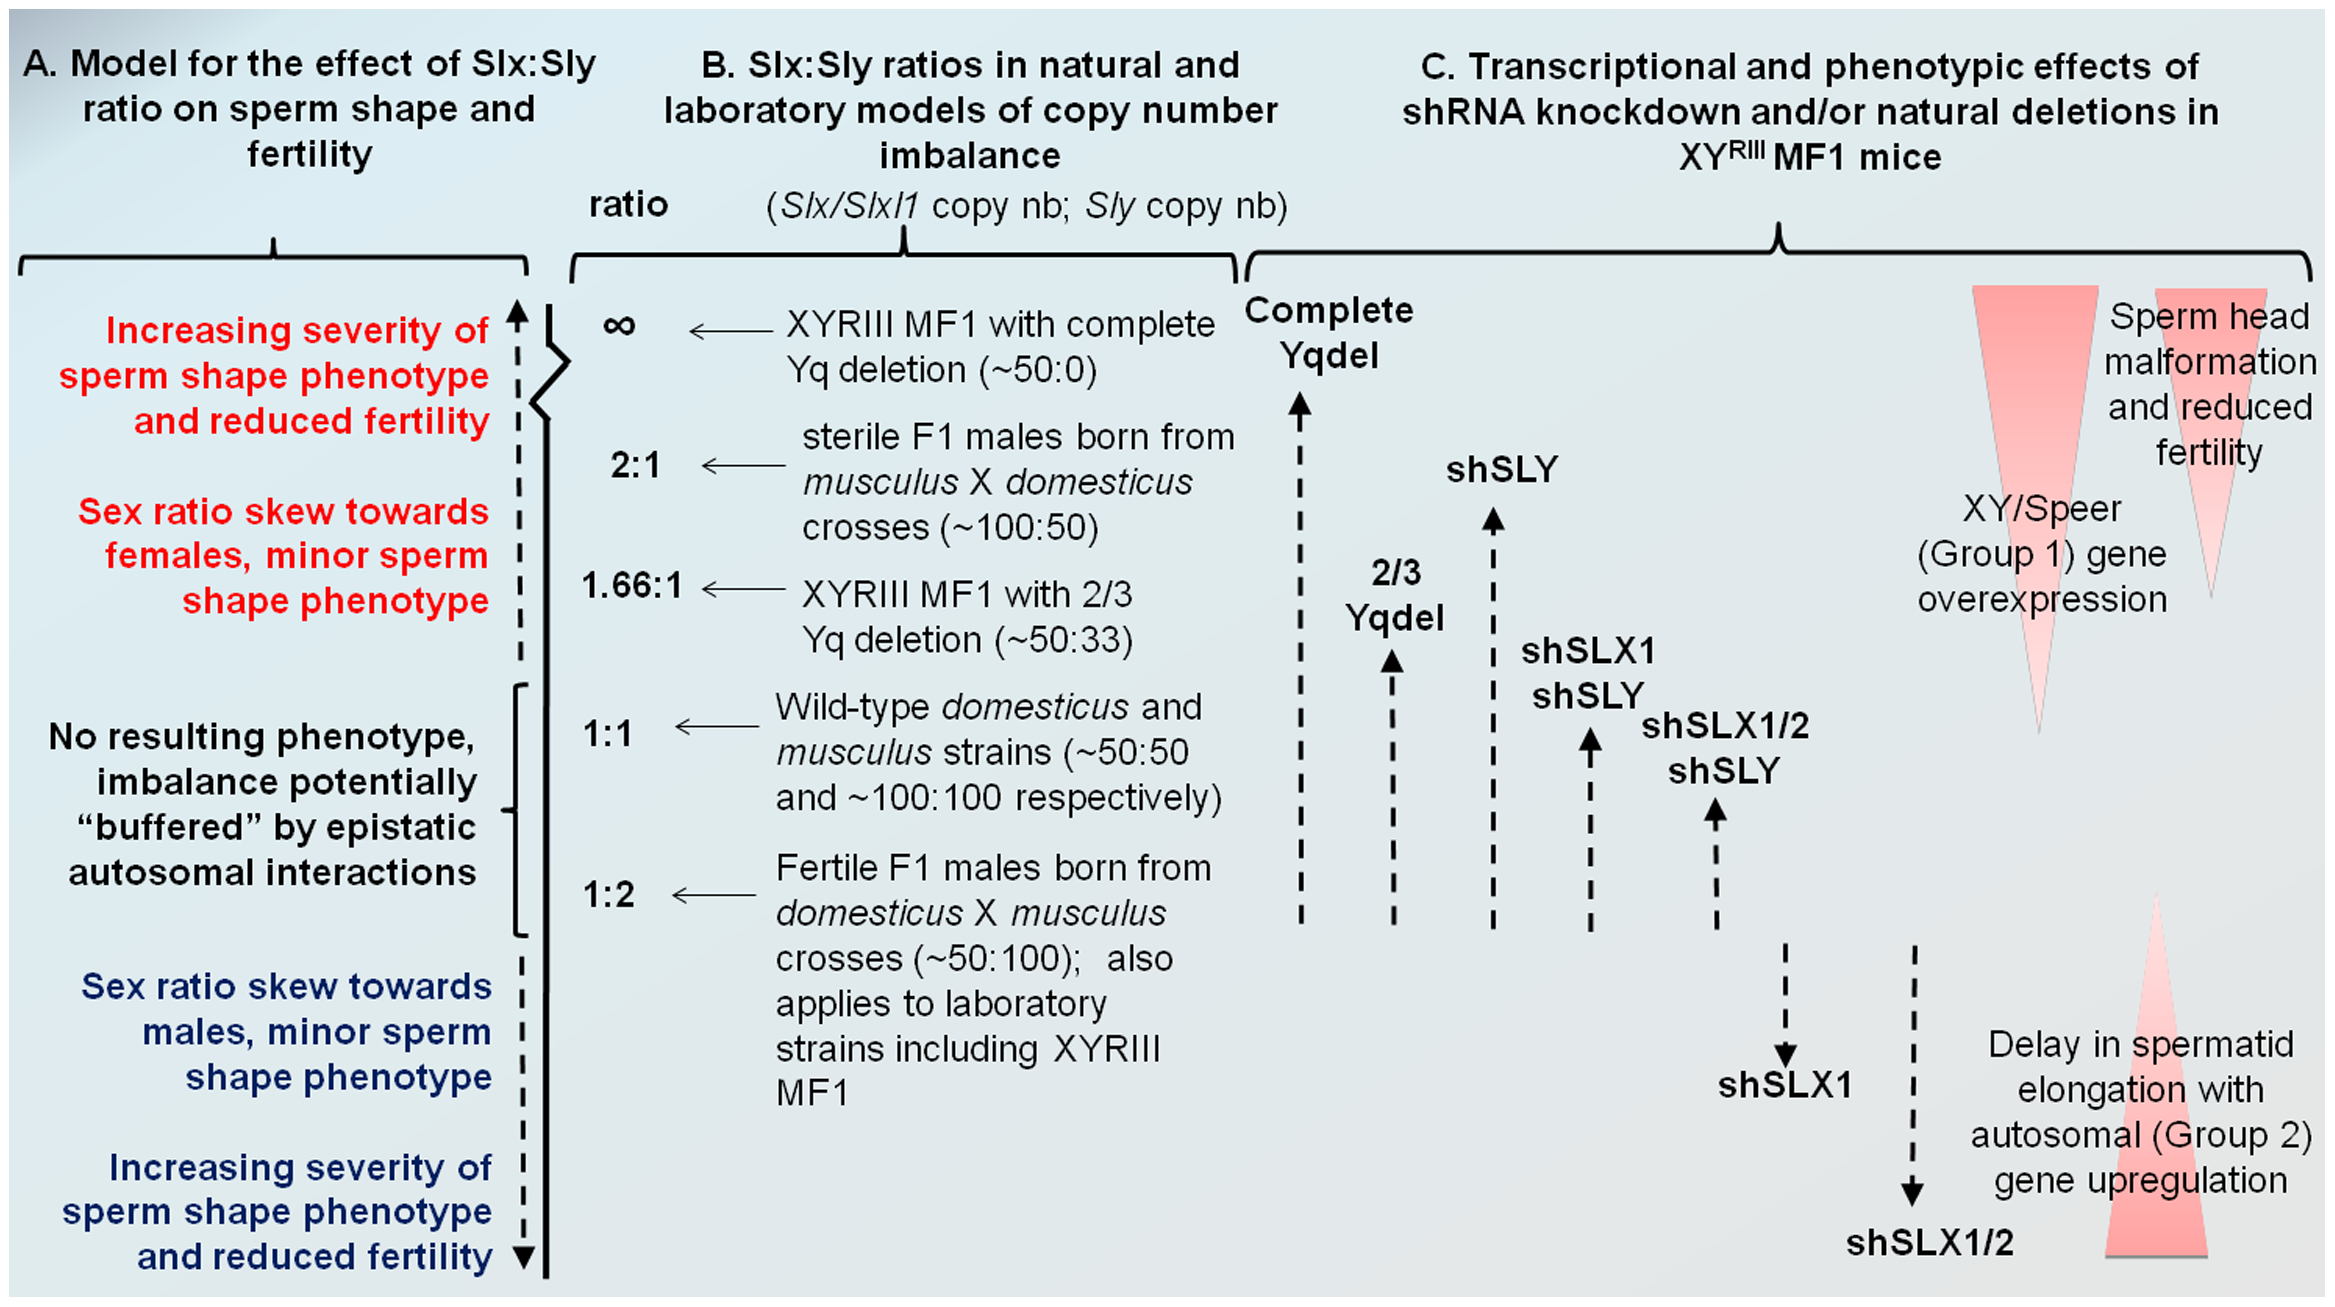 Model comparing <i>Slx:Sly</i> copy number imbalance in natural and laboratory mouse strains to <i>Slx:Sly</i> gene expression imbalance in shRNA knockdown models.